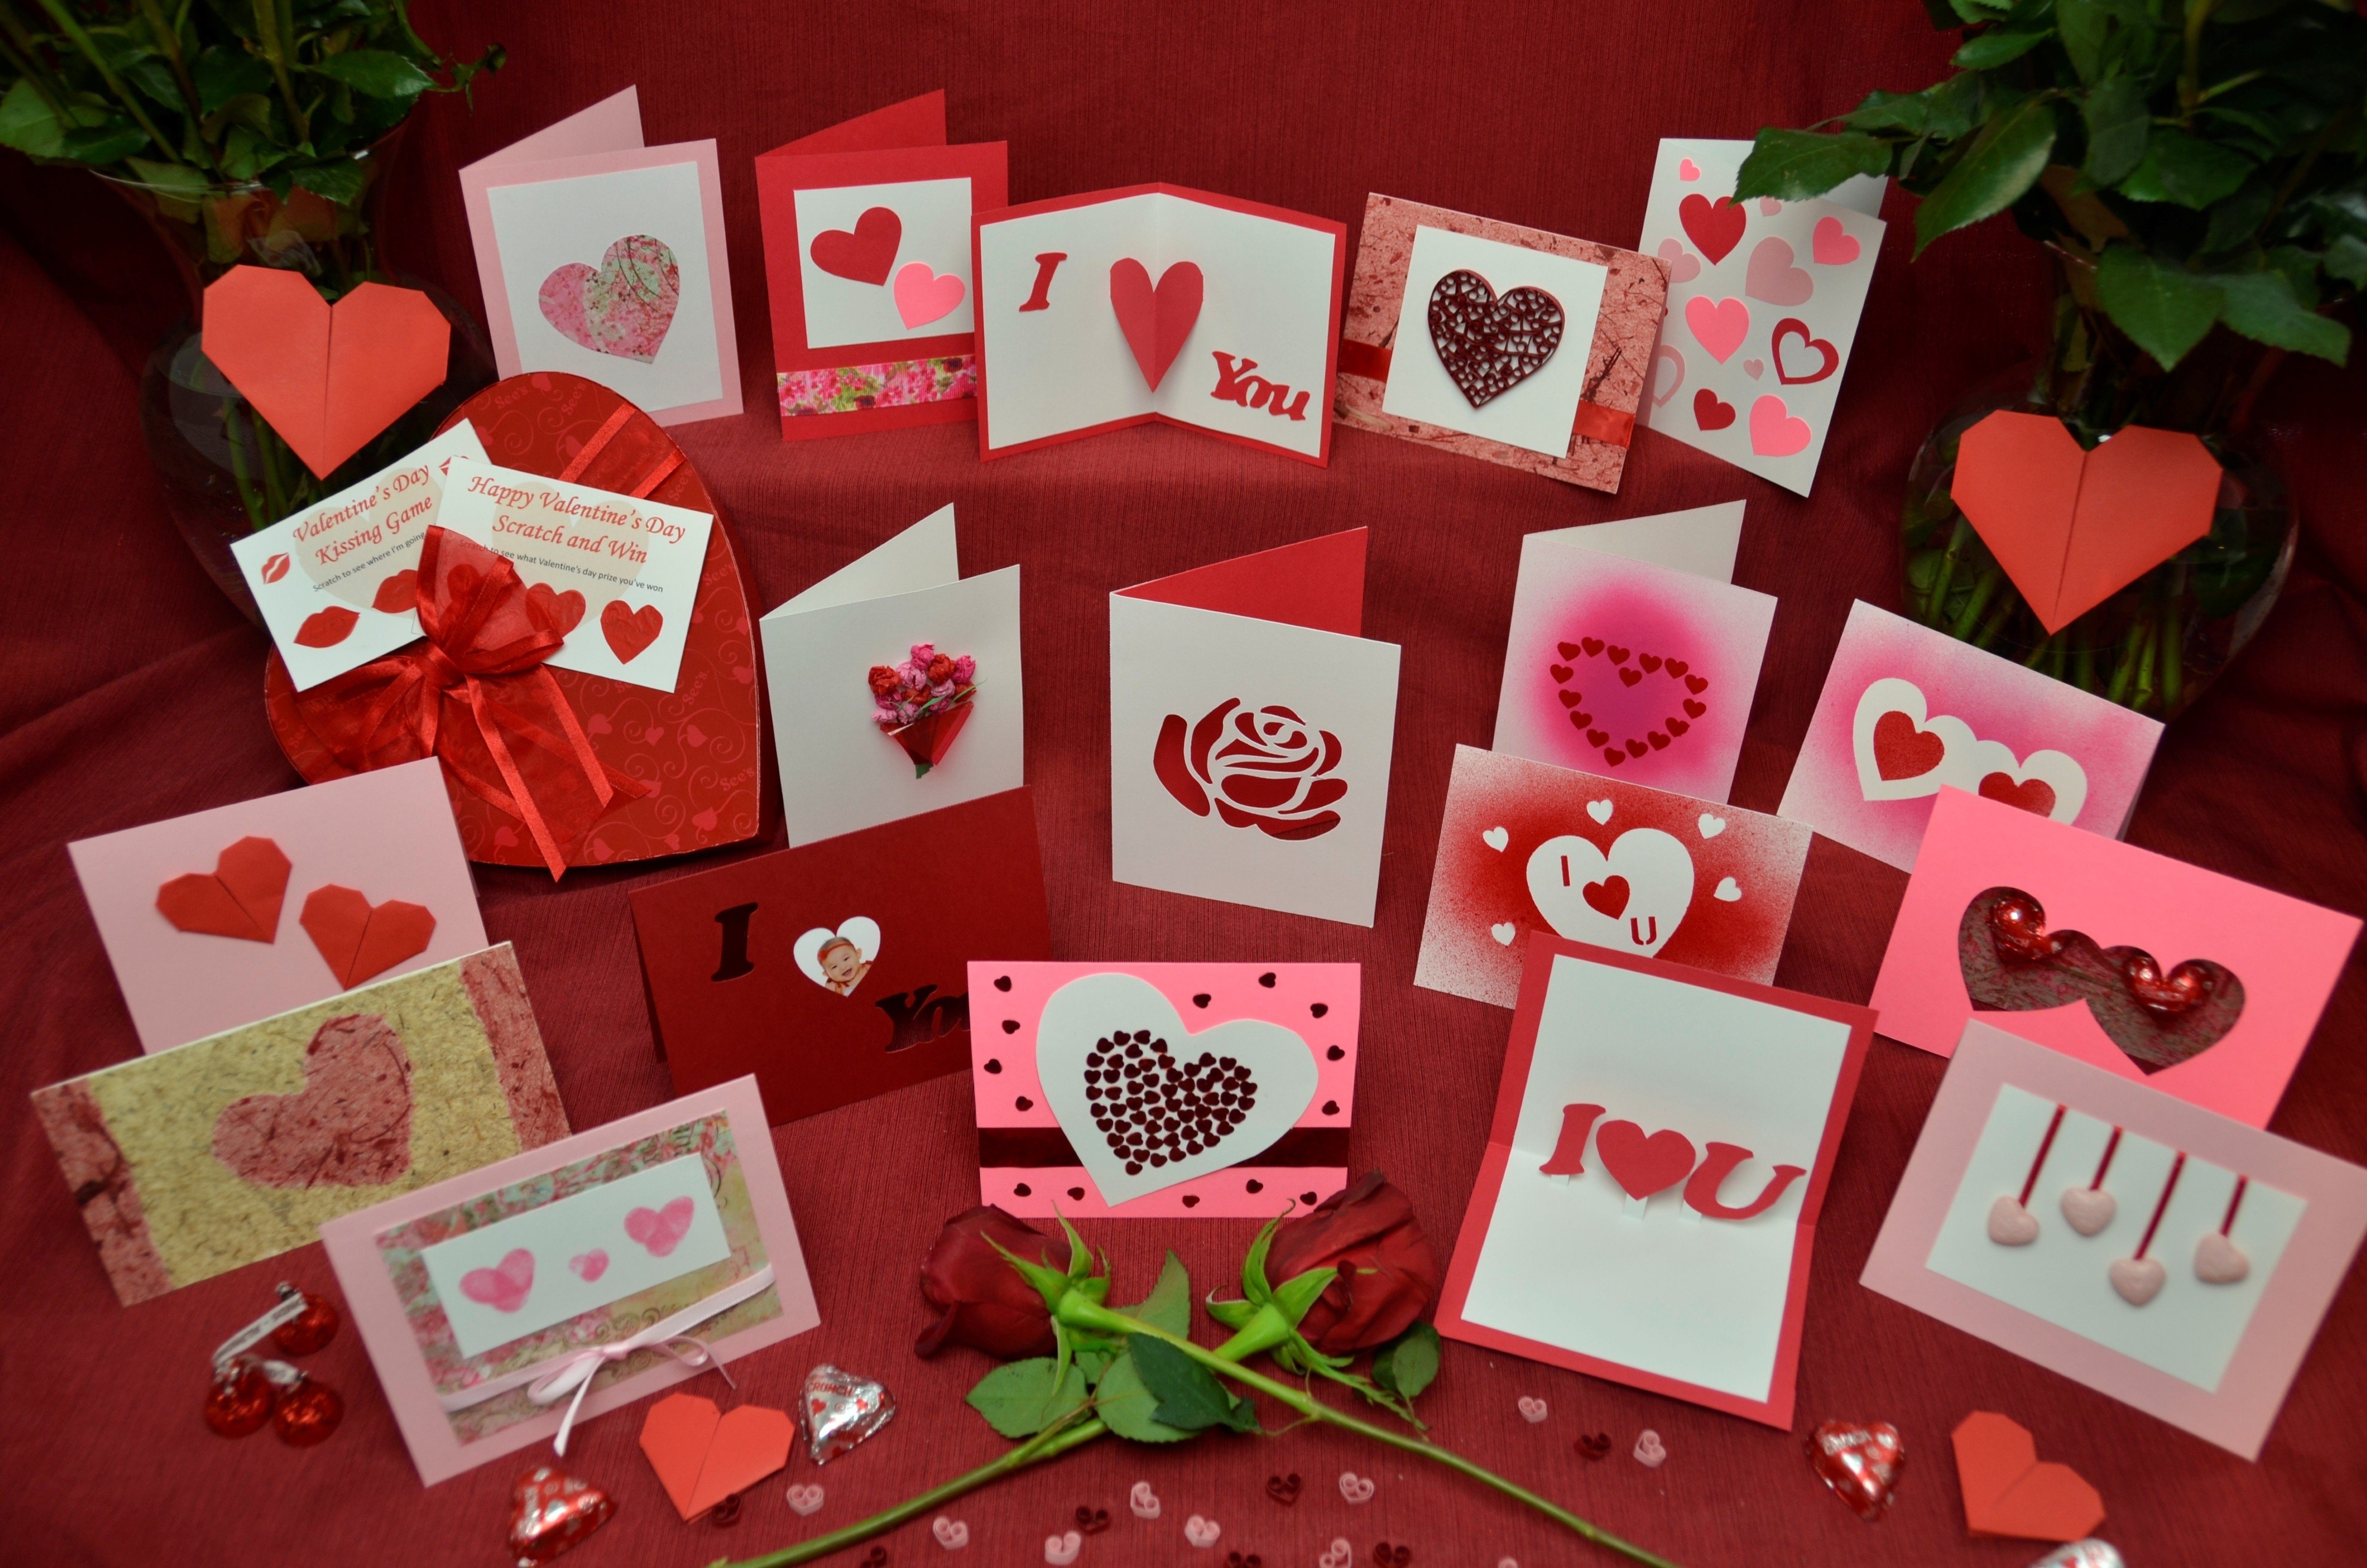 10 Attractive Creative Valentines Day Ideas For Girlfriend top 10 ideas for valentines day cards creative pop up cards 4 2021